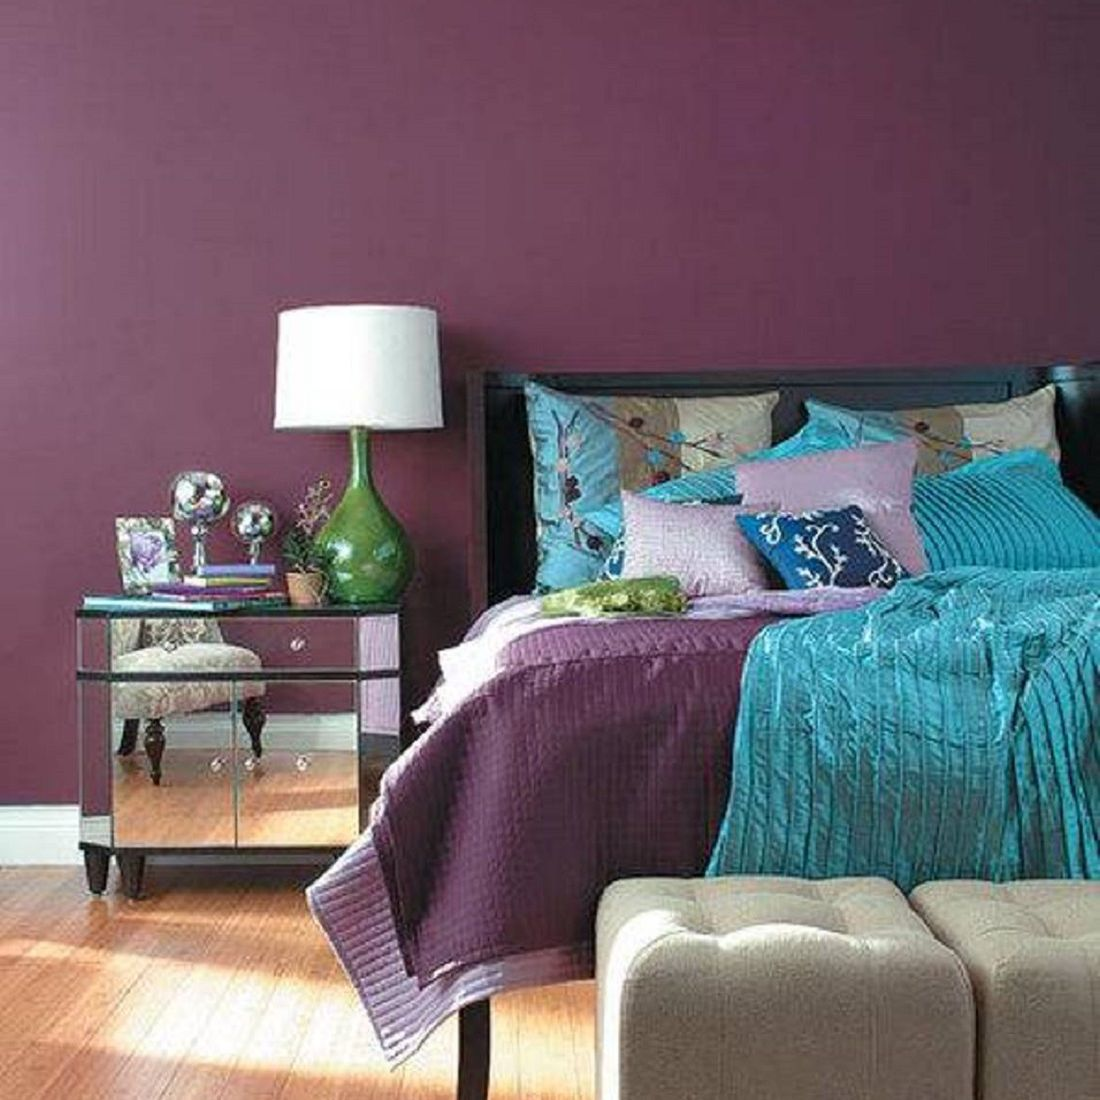 Purple walls in a sophisticated bedroom.